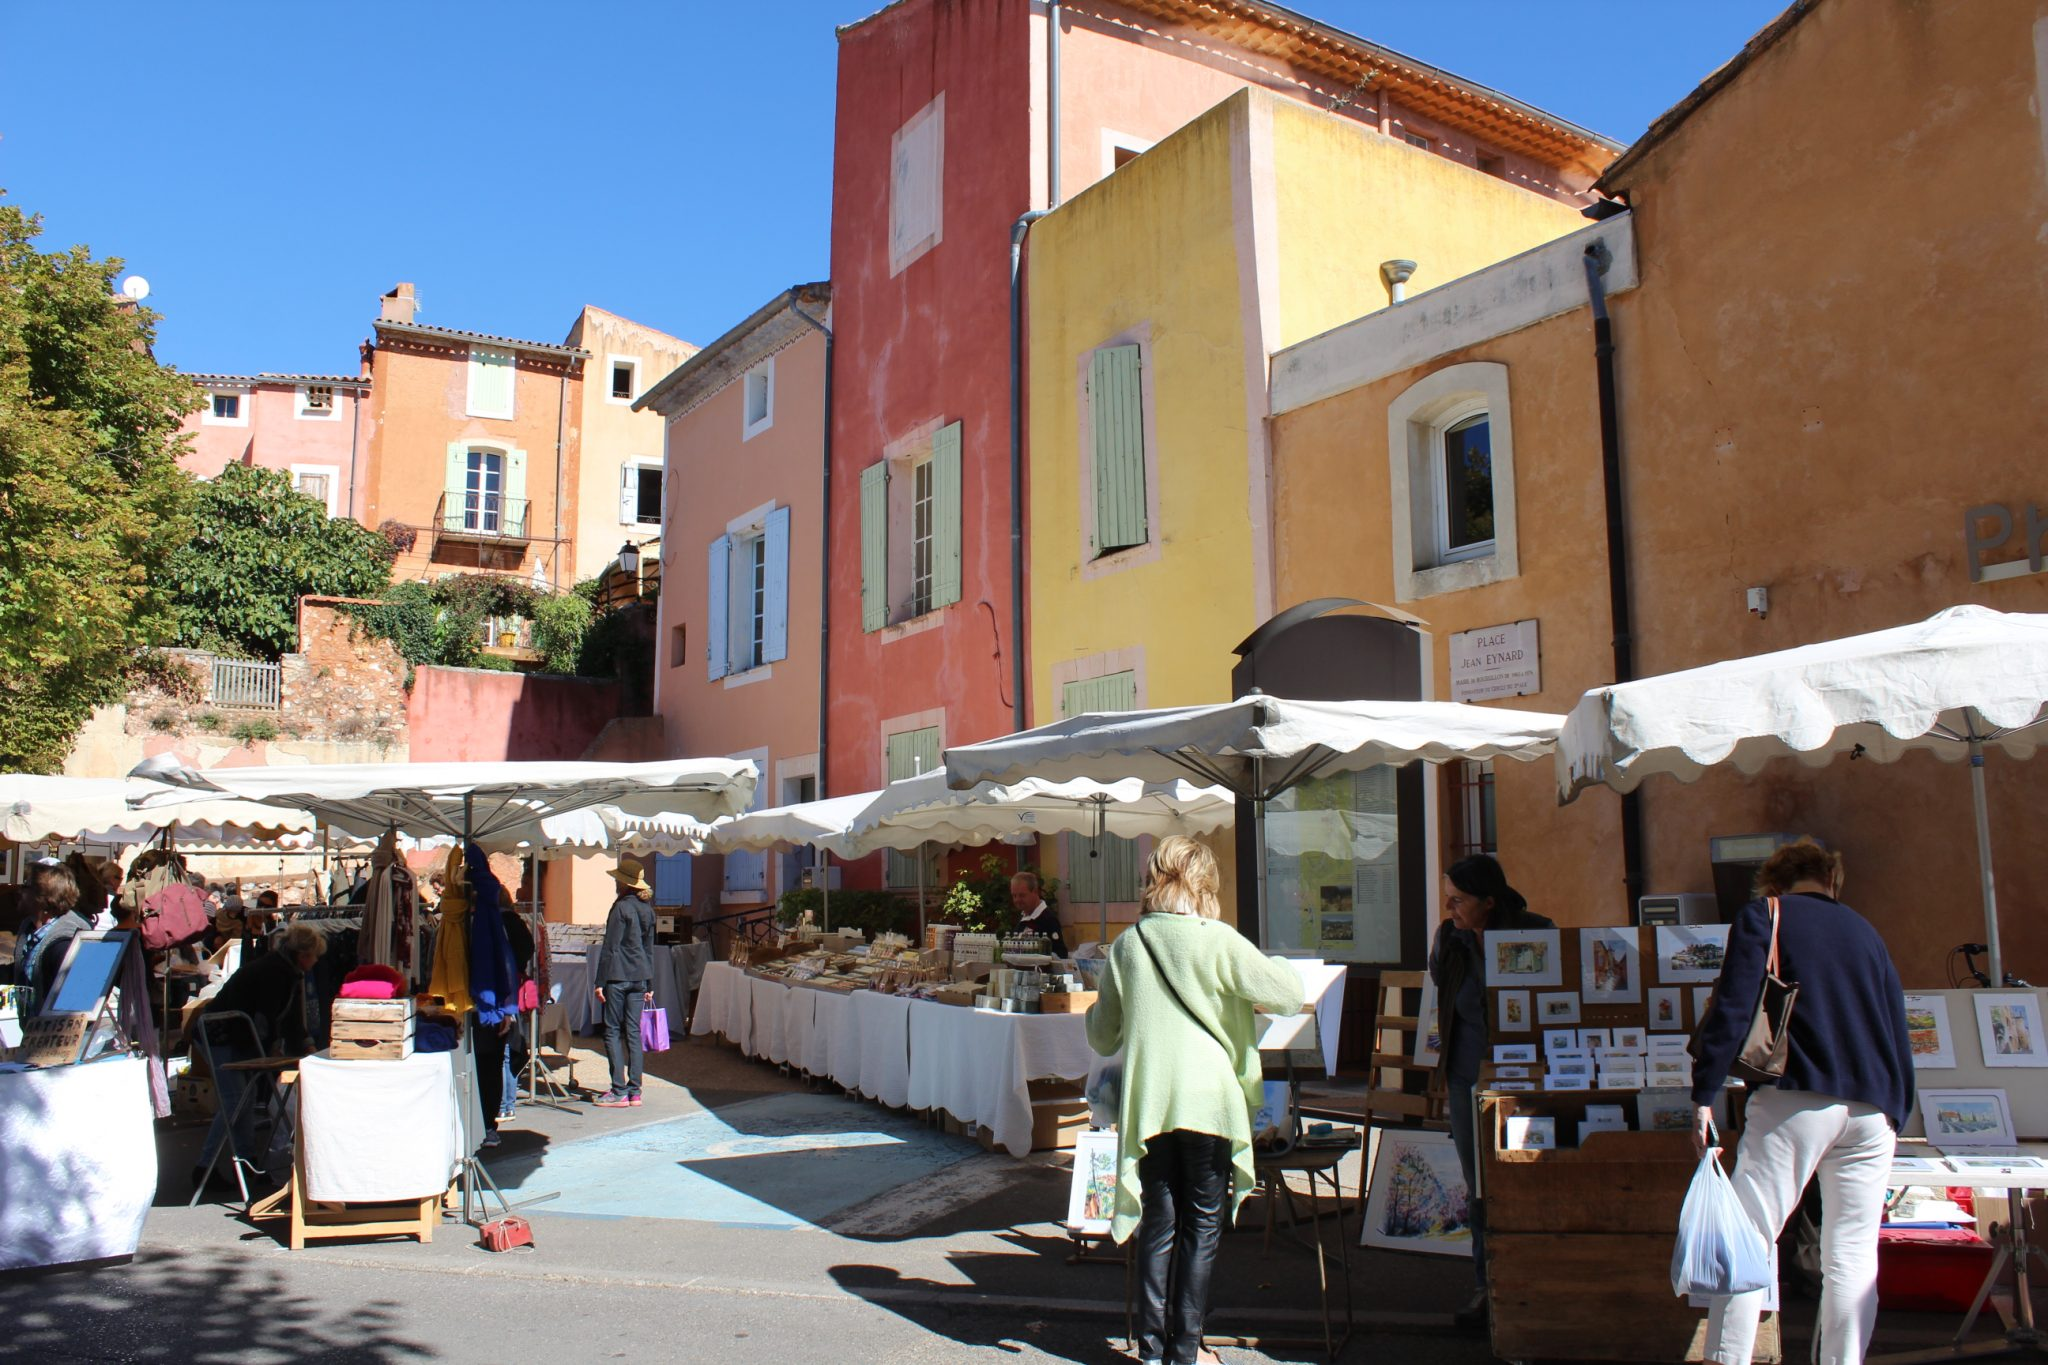 Roussillon provencal market every Thursday